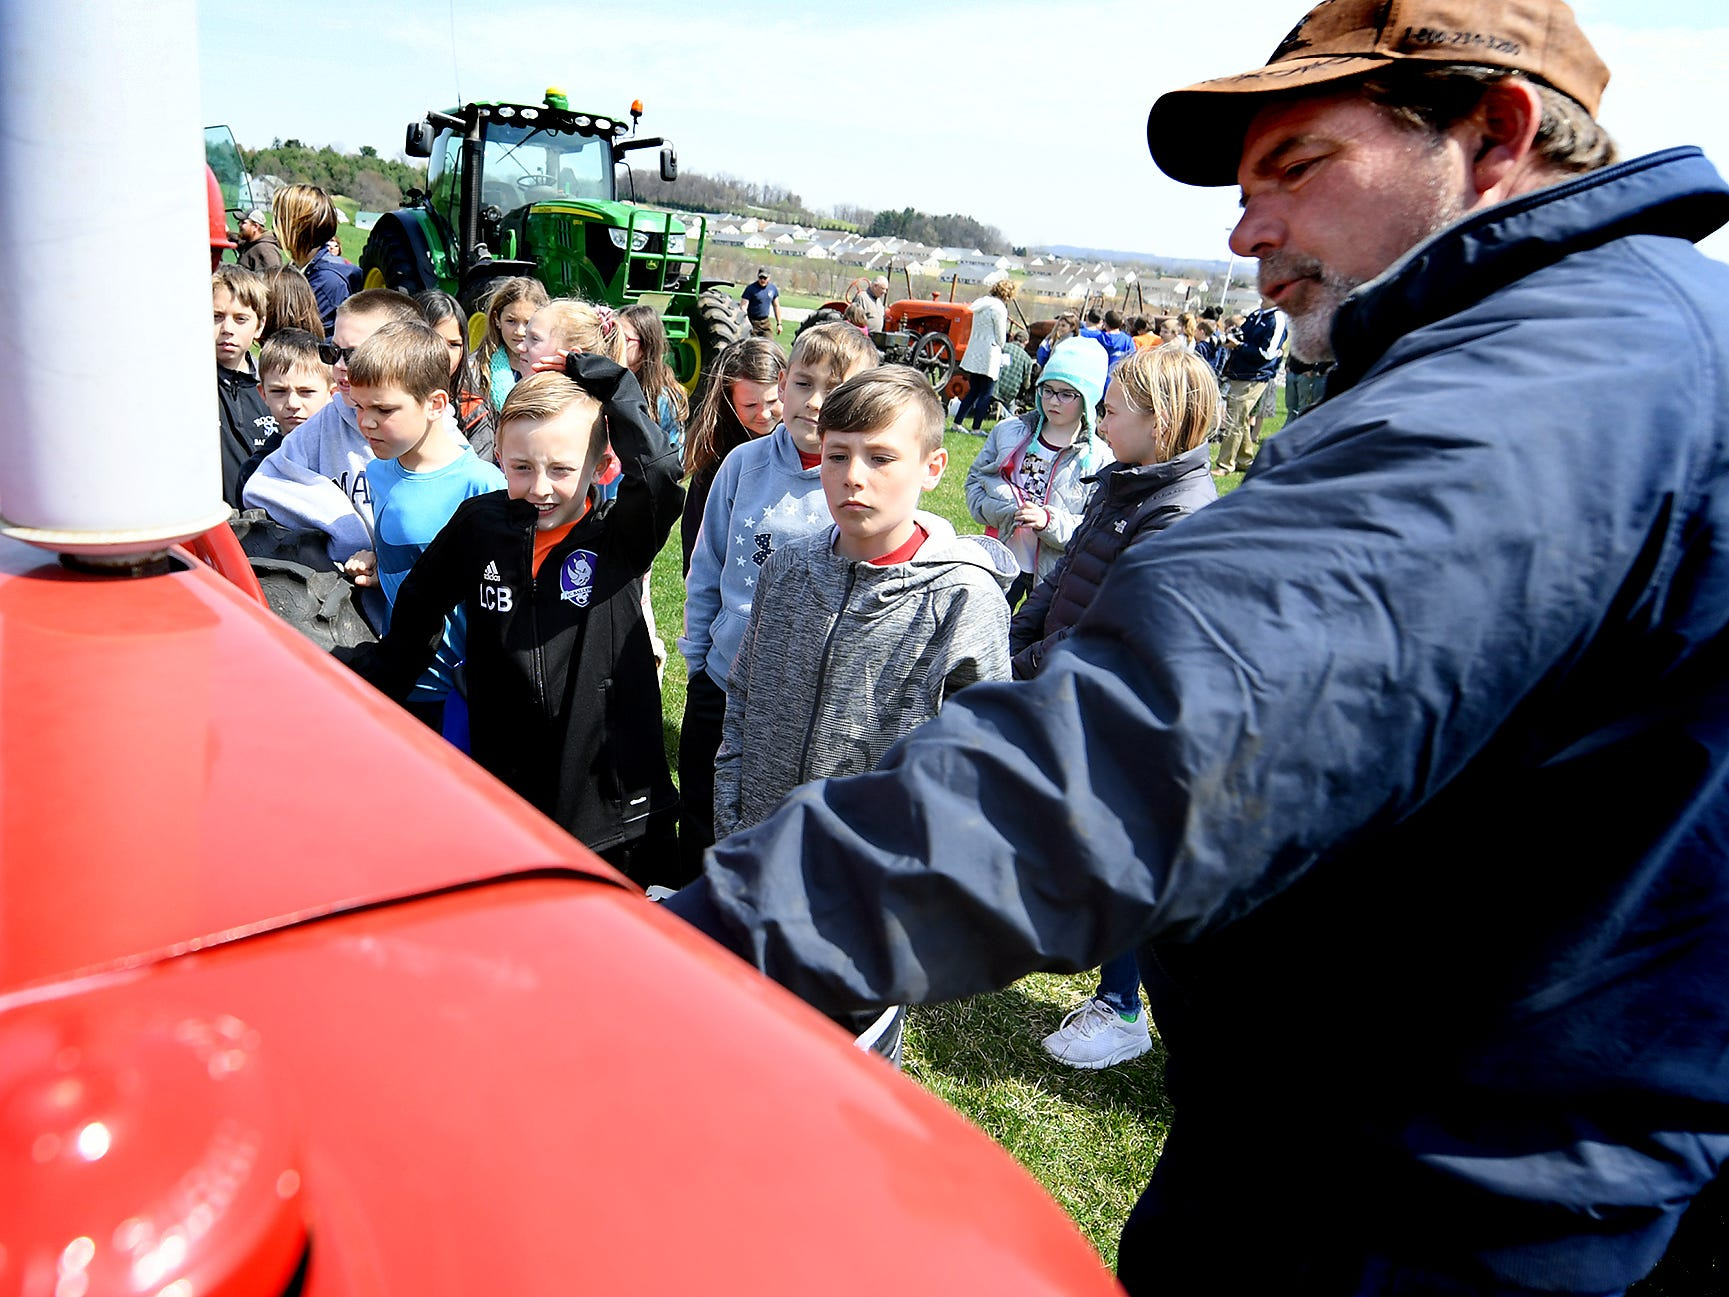 Carey Waugh of Shrewsbury Township answers a question for Spring Grove Elementary School fourth graders Landon Baker, left, and Jordan Eisenhart about the 1947 Farmall tractor he was showing during the district's 6th Annual Rollin' Tractor Show Thursday, April 11, 2019. The show is presented by the Future Farmers Club. Alumni and area residents brought farm equipment to display with the goal of acquainting students with the agriculture industry. The show, which included a parade of equipment, visited the intermediate and elementary schools. Bill Kalina photo